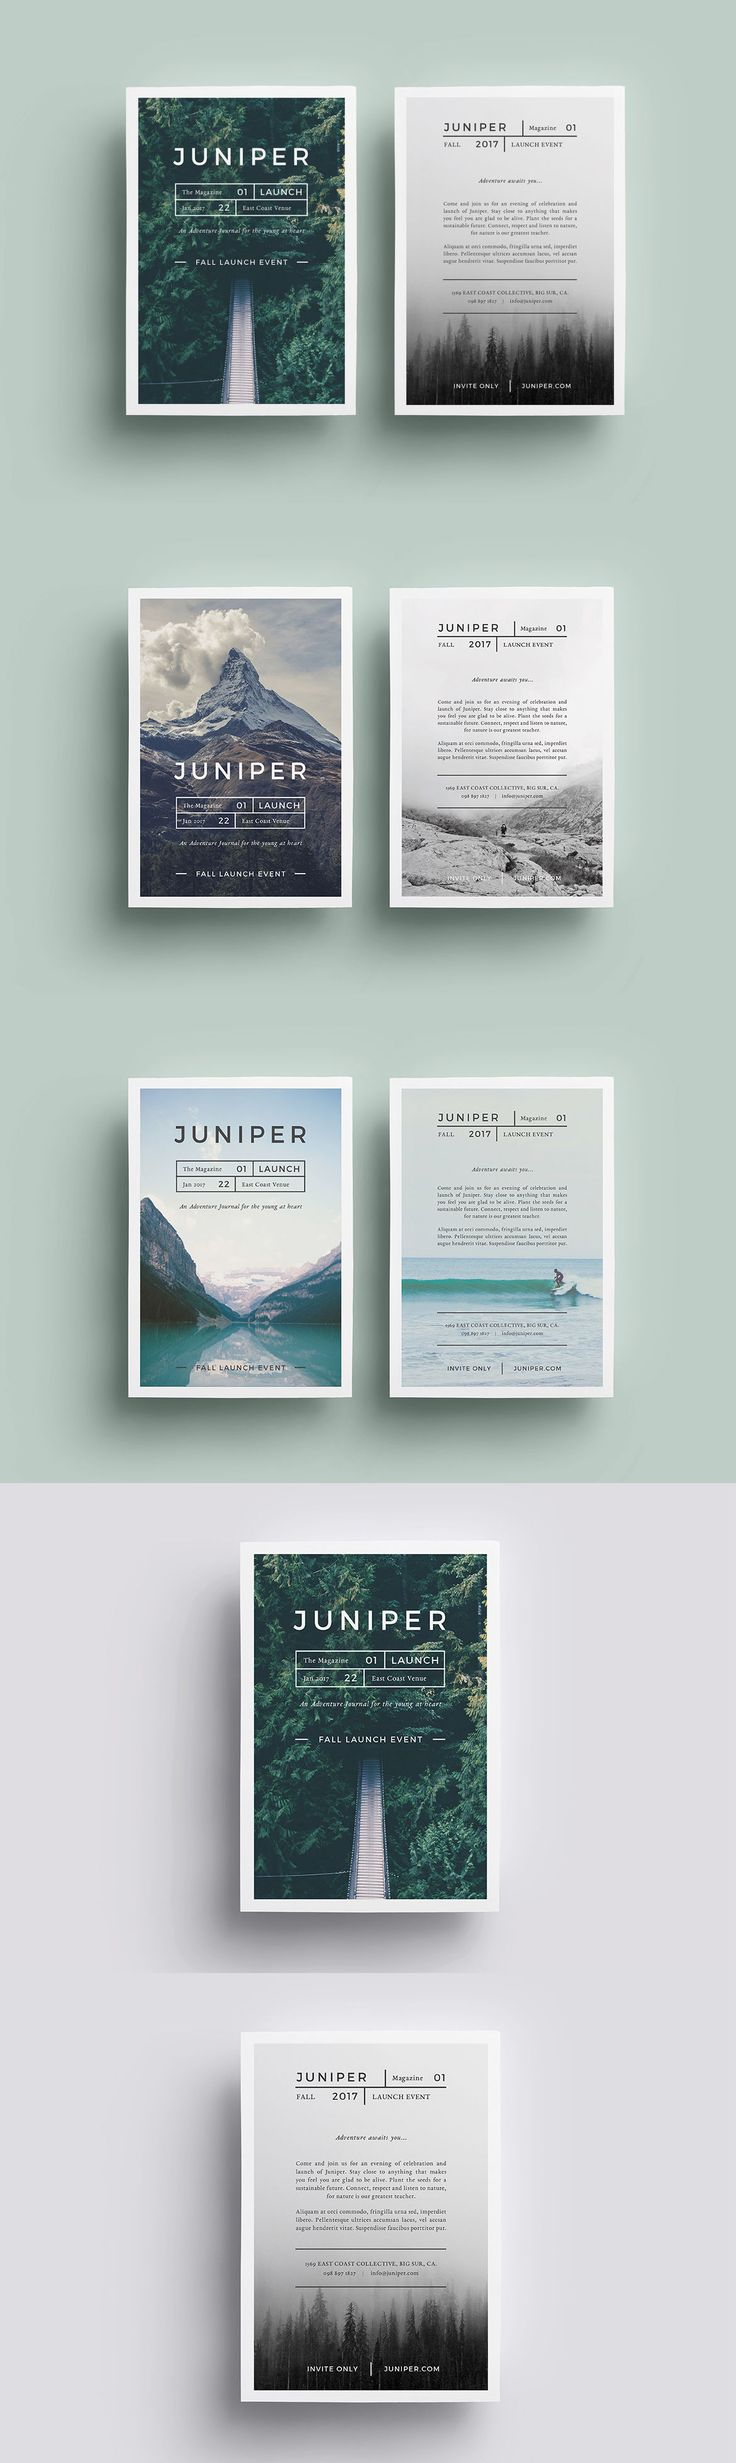 17 Best ideas about Flyer Layout on Pinterest | Graphic design ...